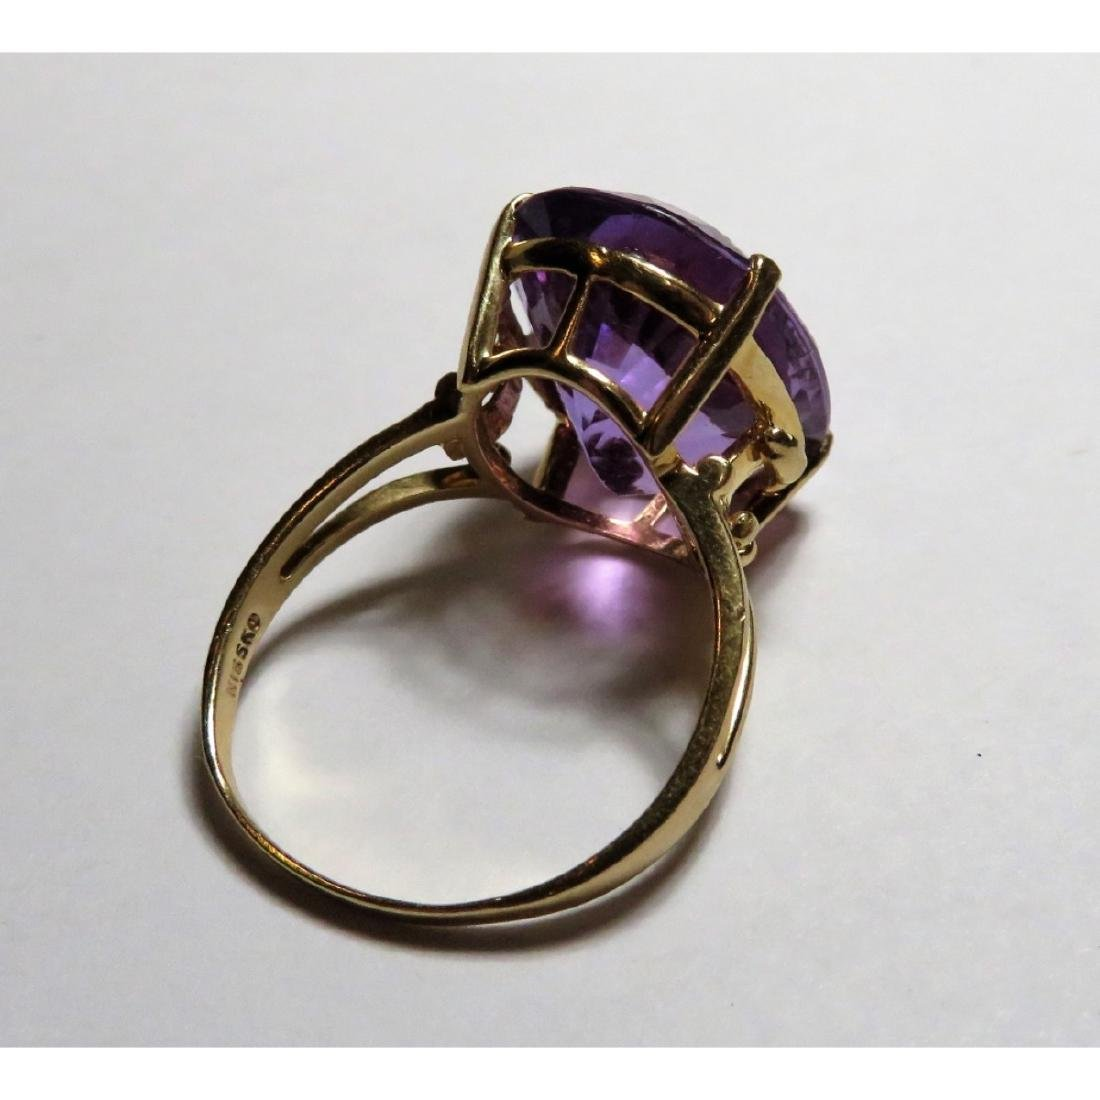 Extra Fine 17 ct. Amethyst  Designer Ring in 14k - 5